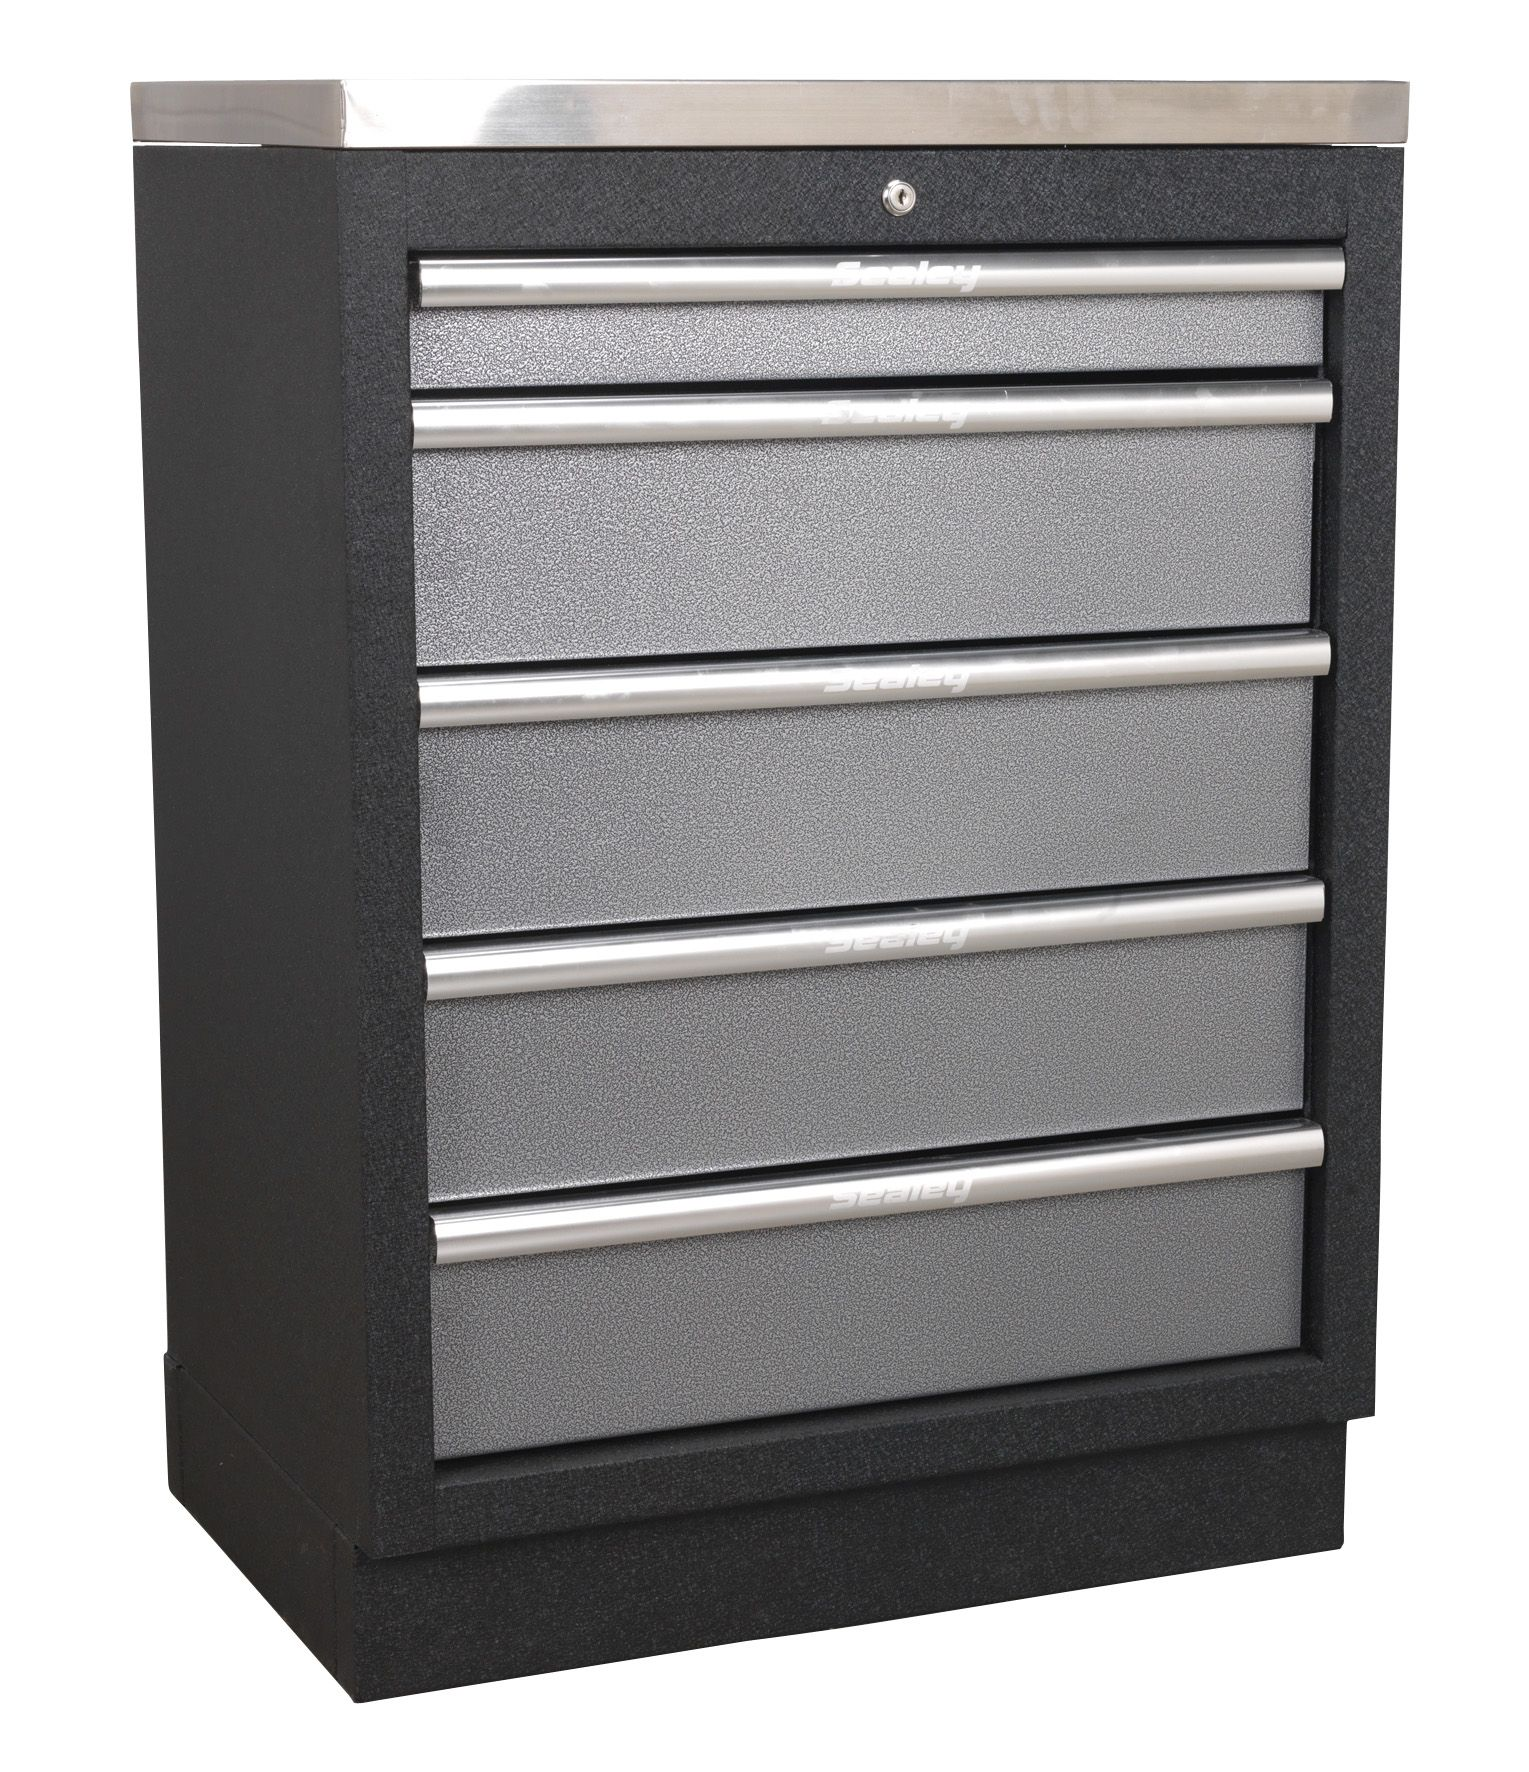 Sealey Superline Pro Modular 5 Drawer Cabinet 680mm